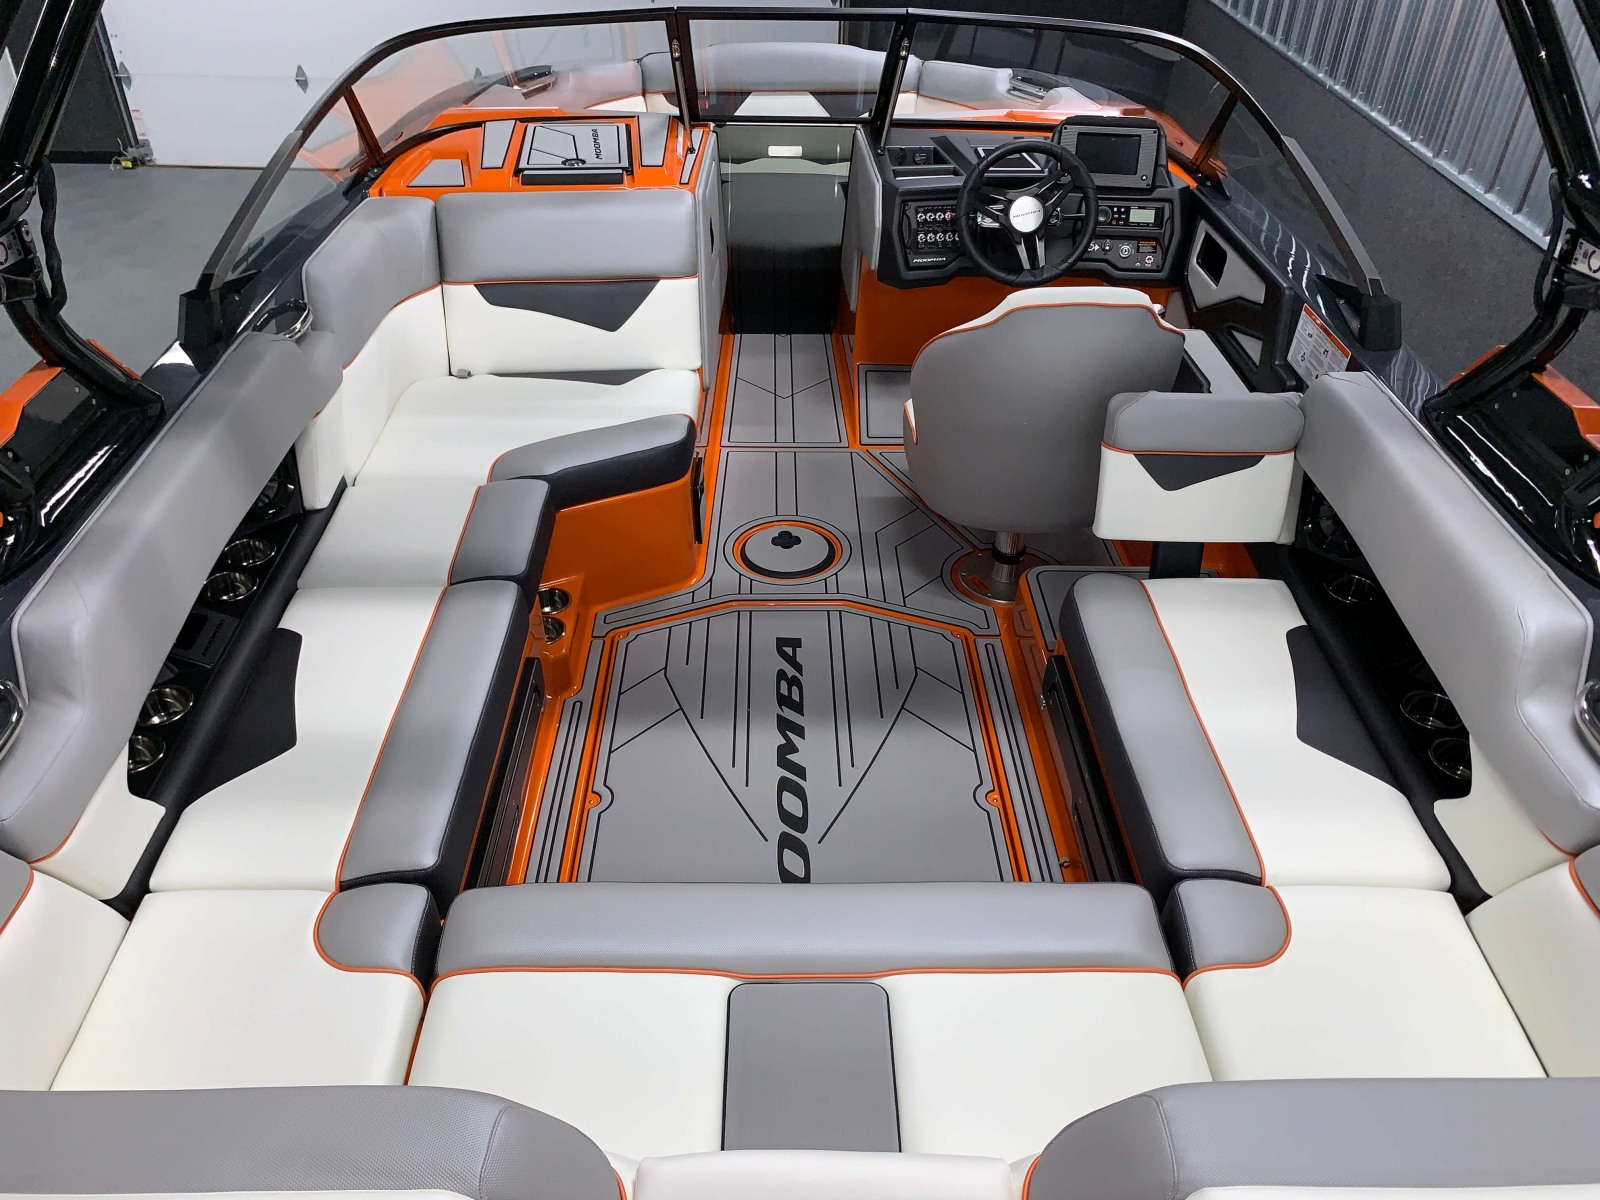 Interior Layout of the 2021 Moomba Kaiyen Wake Boat